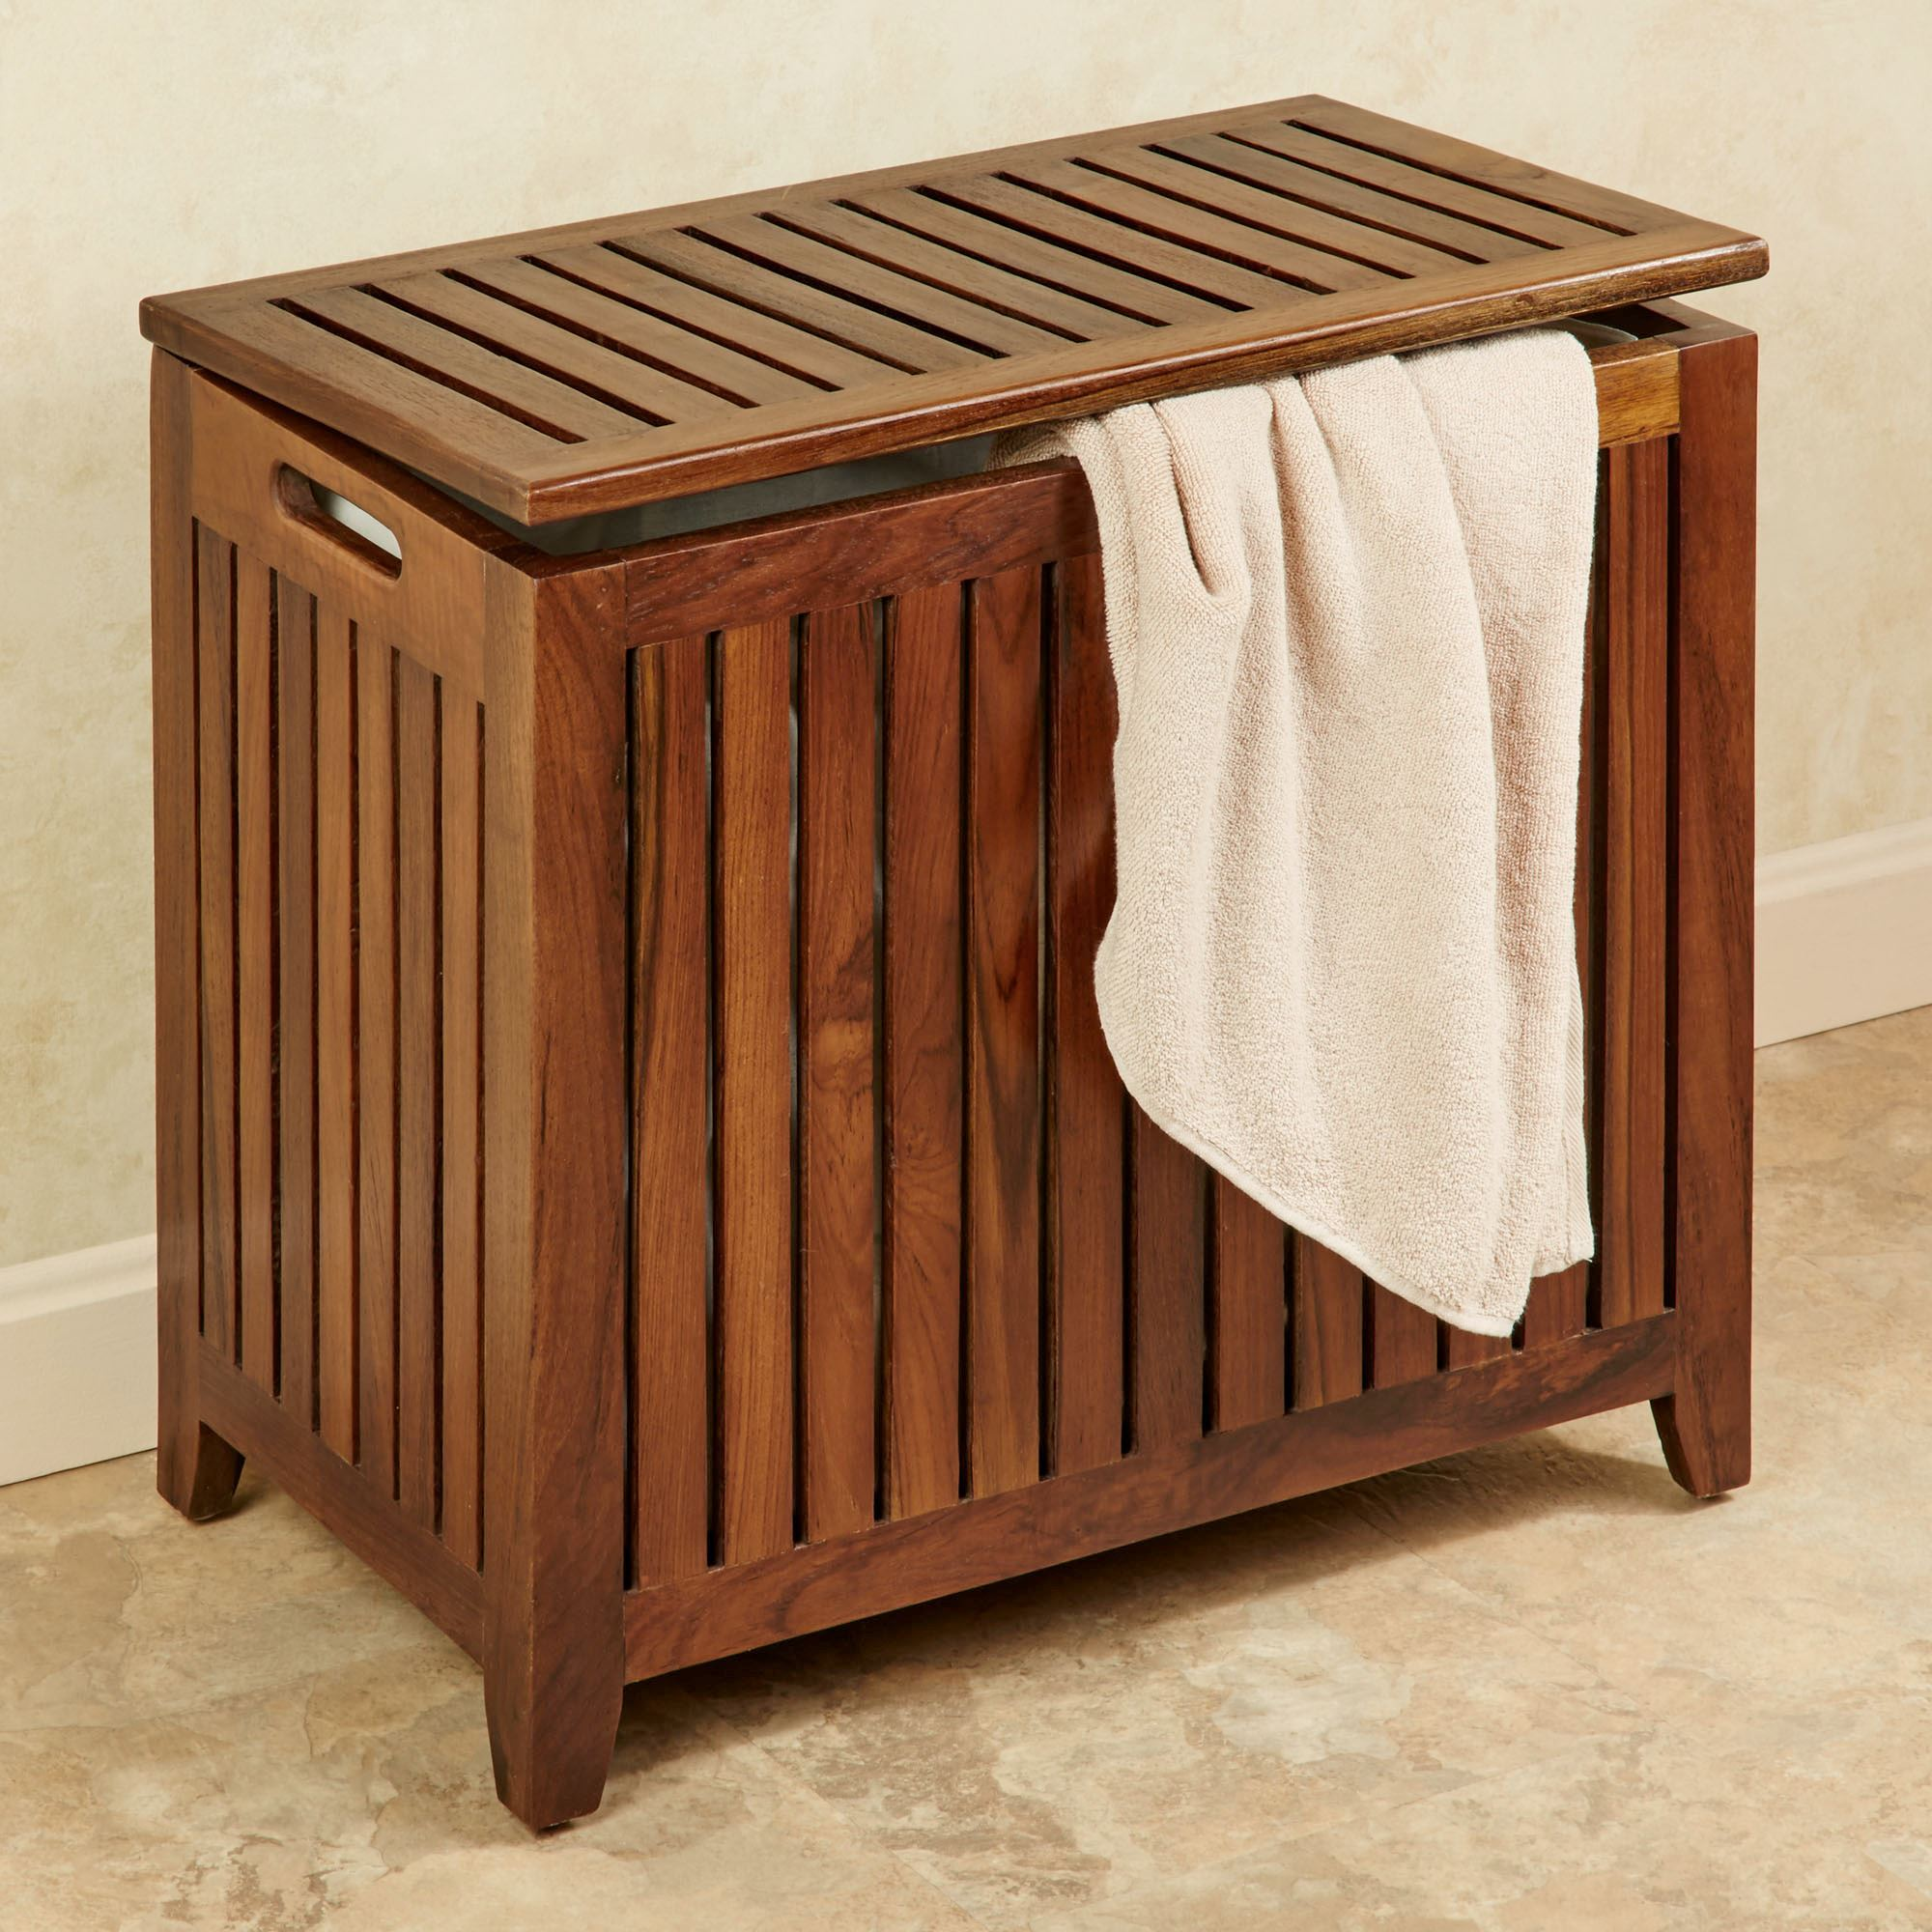 Jonas Large Teak Wood Hamper